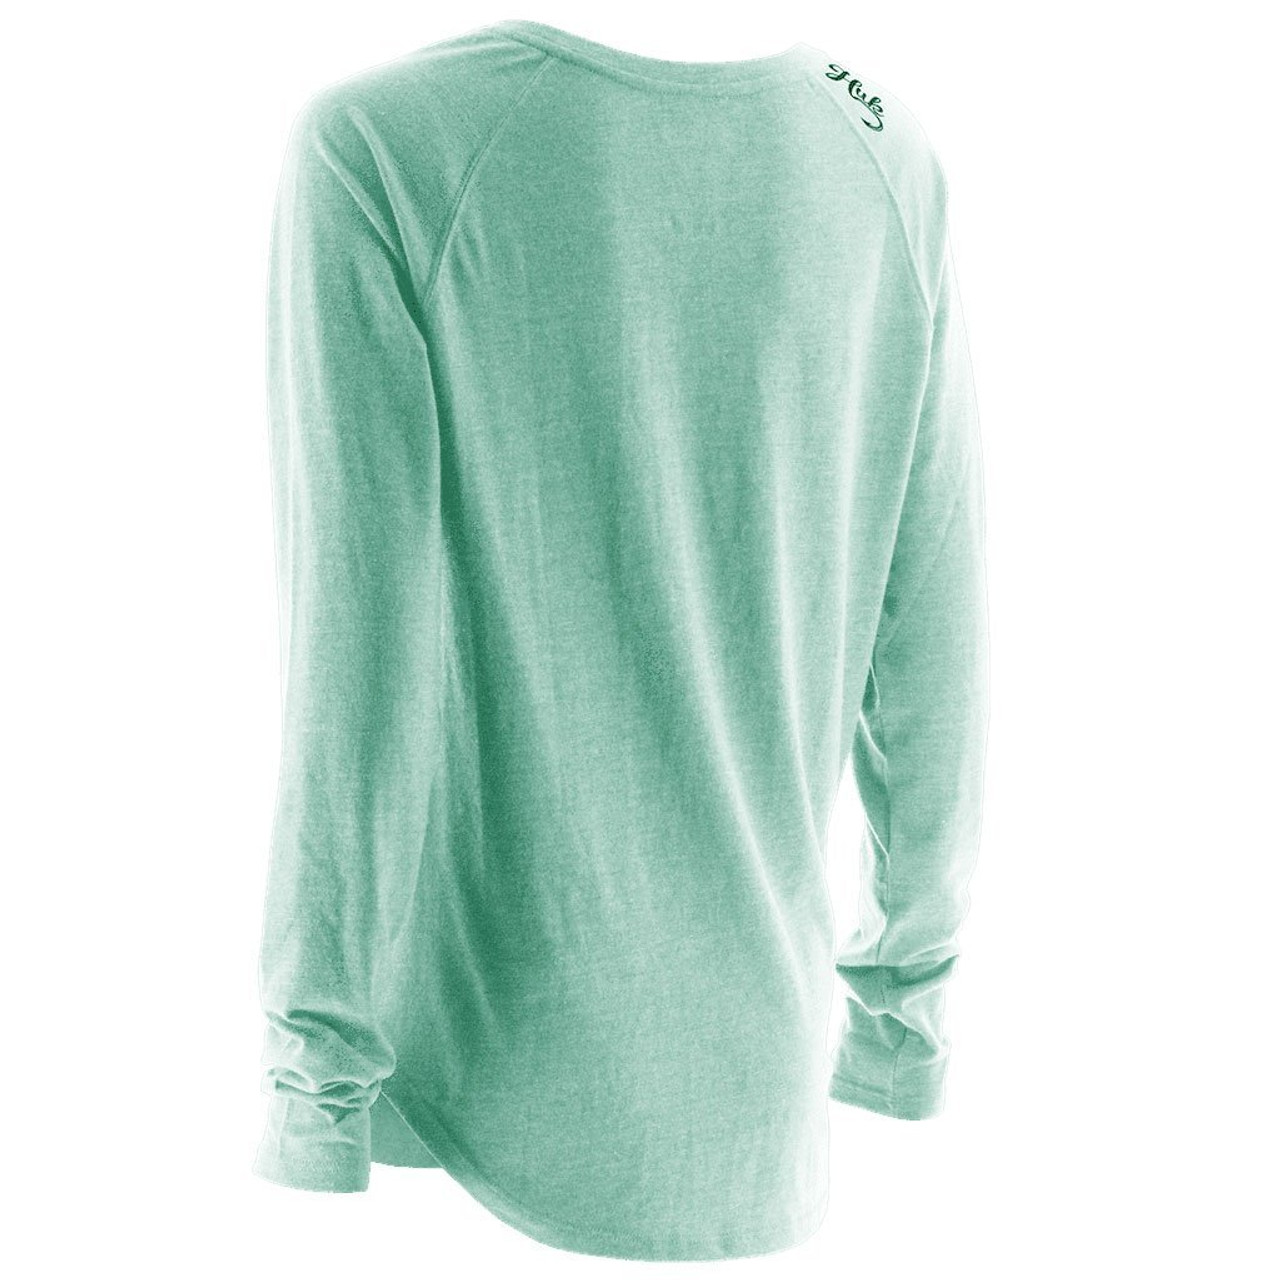 Huk Womens Relaxed LS Tee